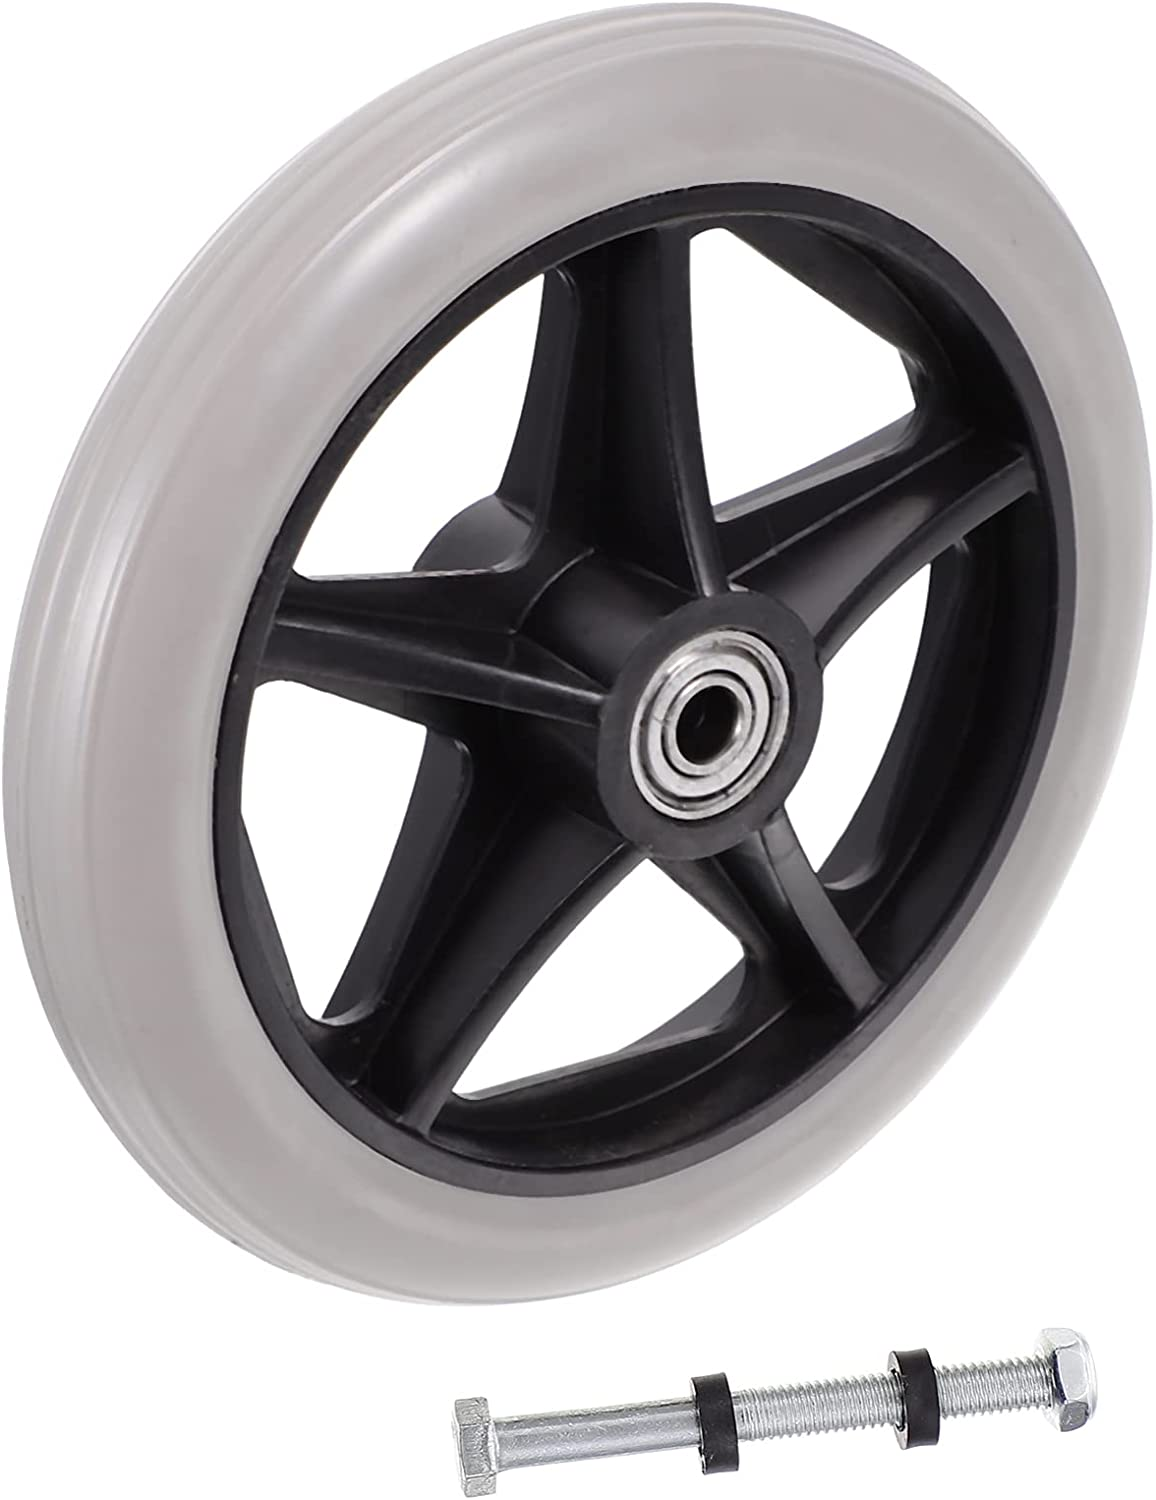 EXCEART 6 Inch Solid Black wholesale Caster Mail order cheap Wheel Replacement Wh for Parts